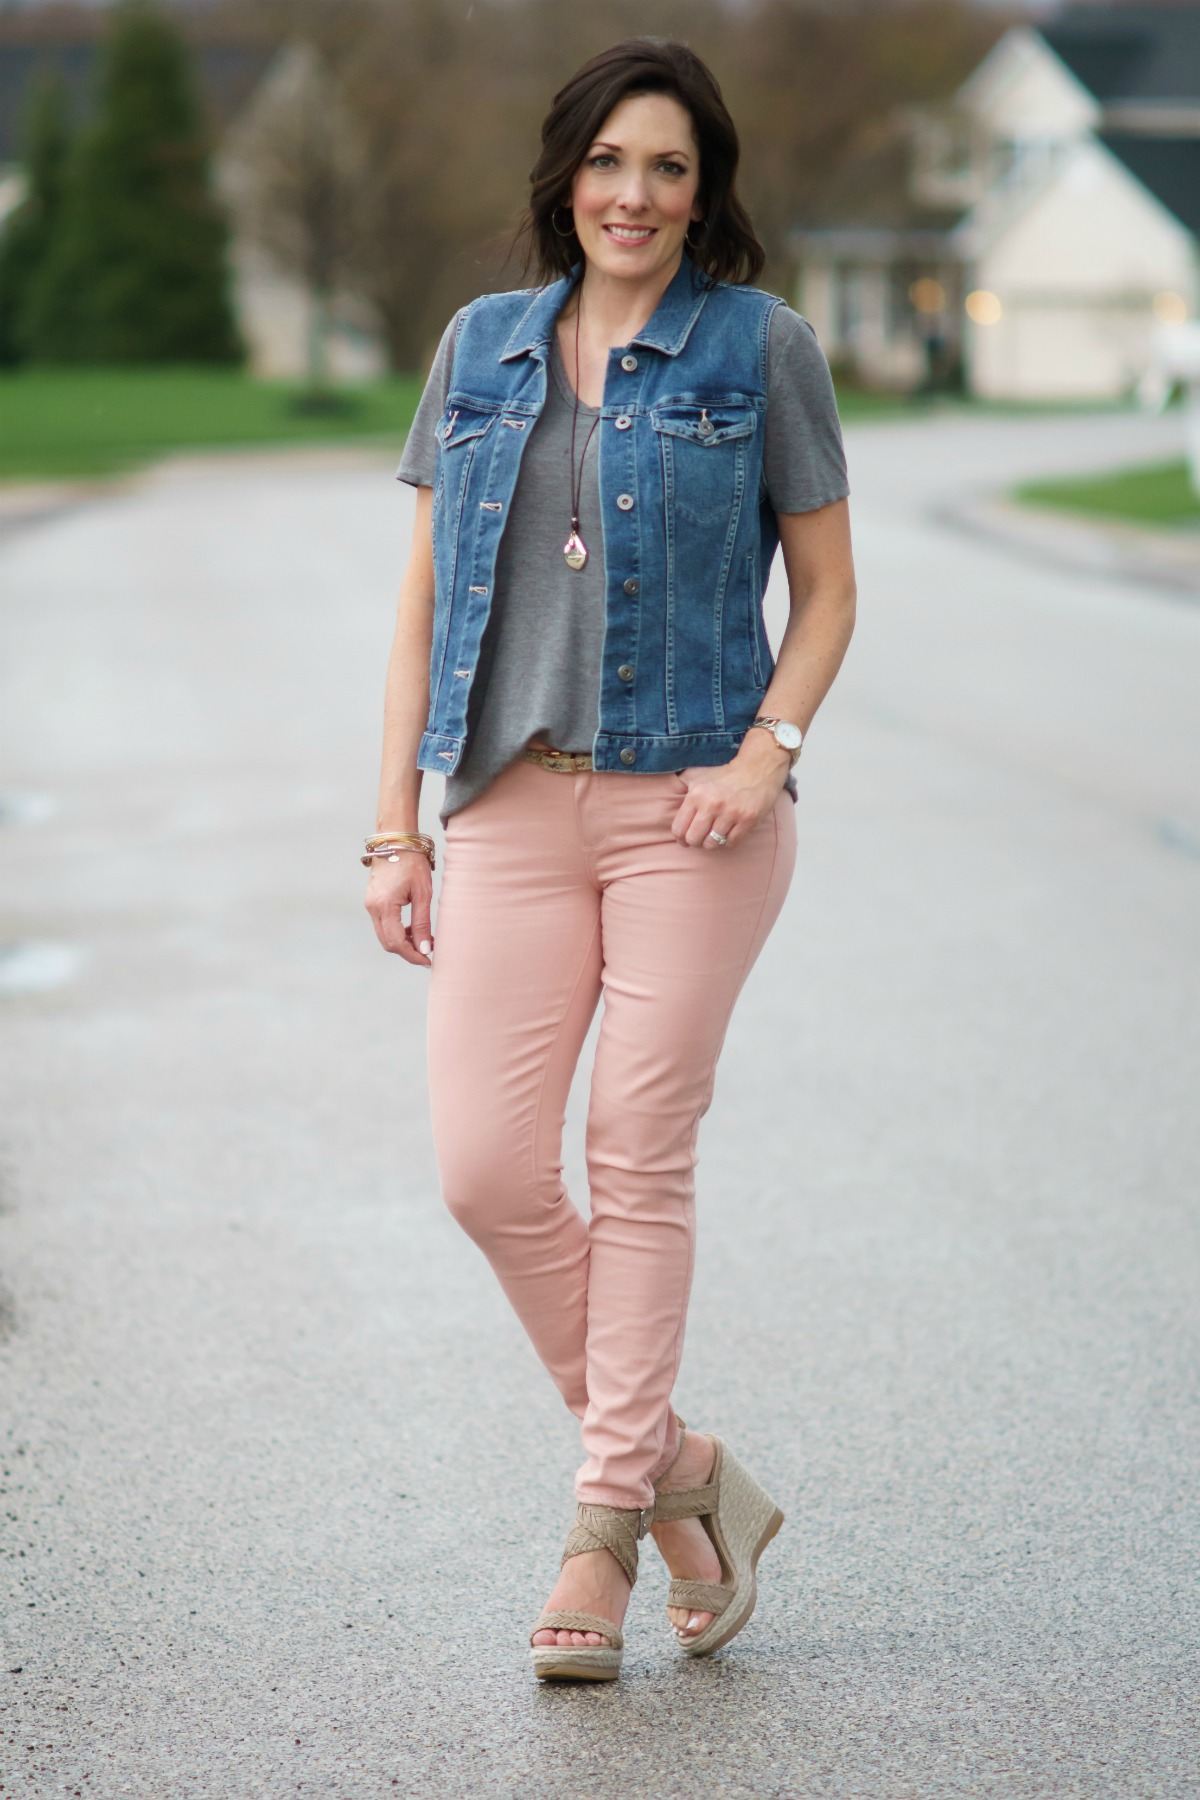 Find great deals on eBay for pink jeans women. Shop with confidence. Skip to main content. eBay: AMERICAN EAGLE Women's Skinny Jeans SIZE 4 Pale Pink. Pre-Owned. $ Guaranteed by Wed, Oct. Buy It Now +$ shipping. Celebrity Pink Women's Low Rise Skinny Jeans Black Size 0 NWT. Brand New. $